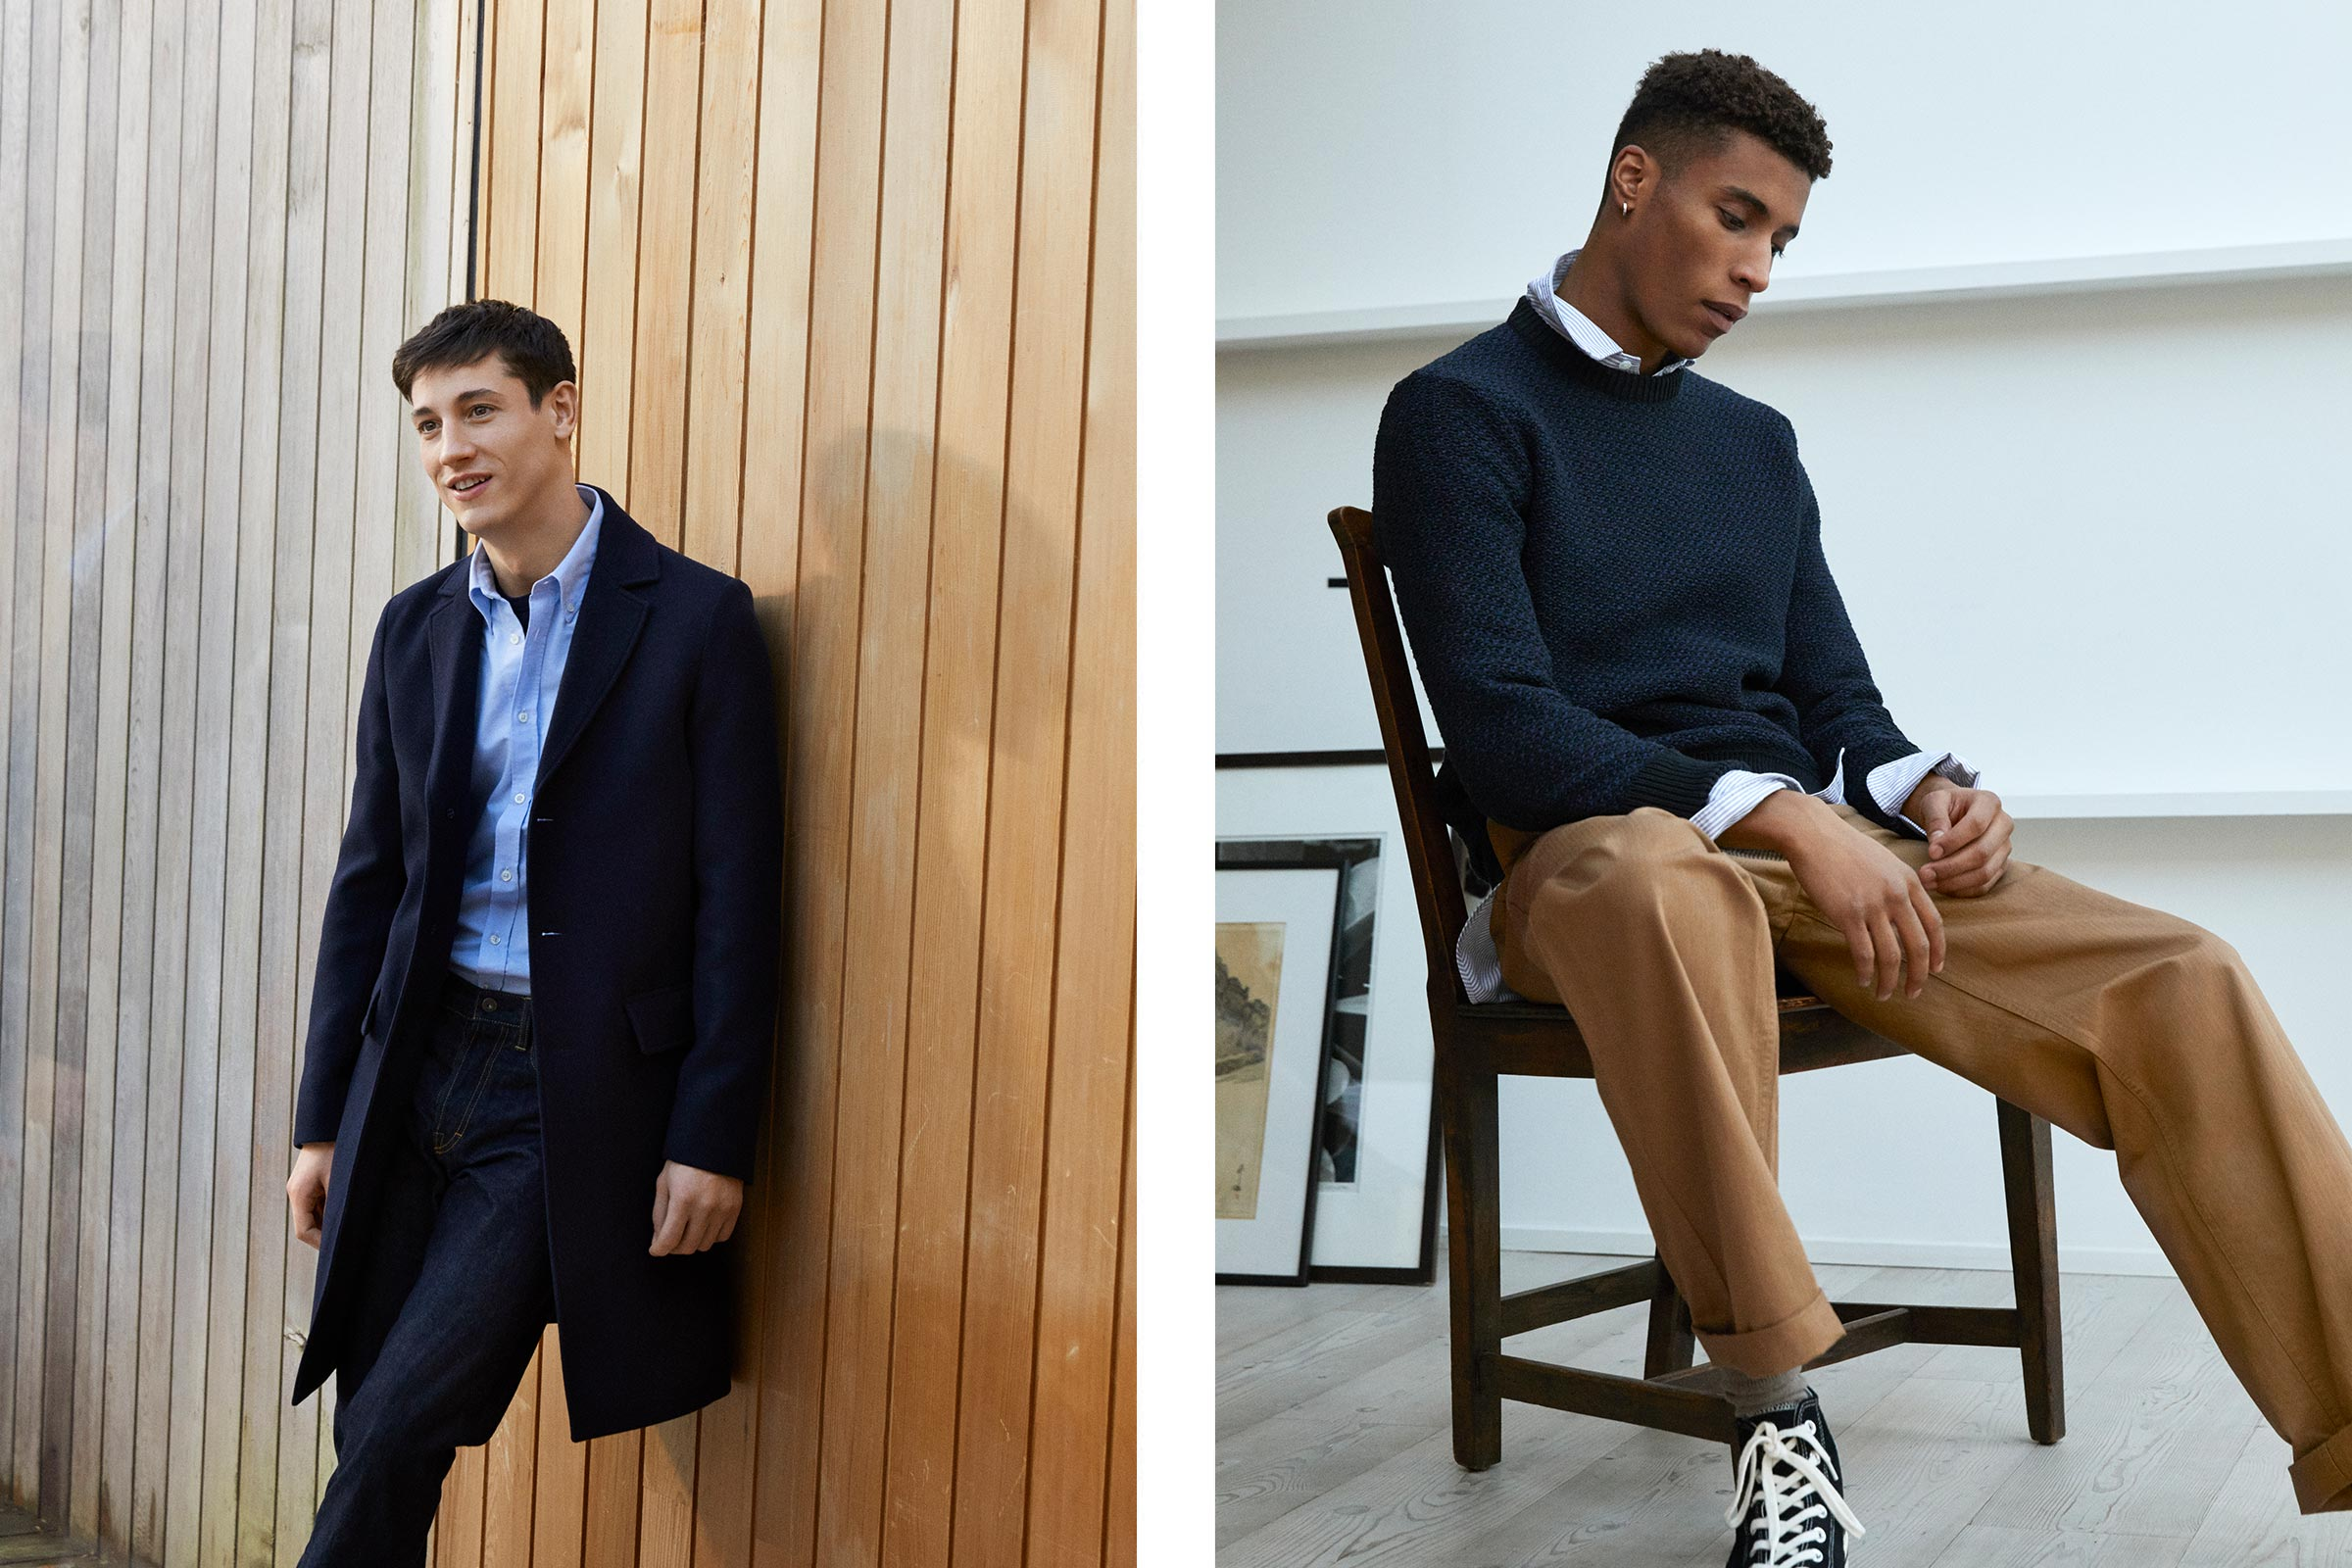 Le Meilleur Mr Porter Interview New Mr P Collection Hey Gents Ce Mois Ci